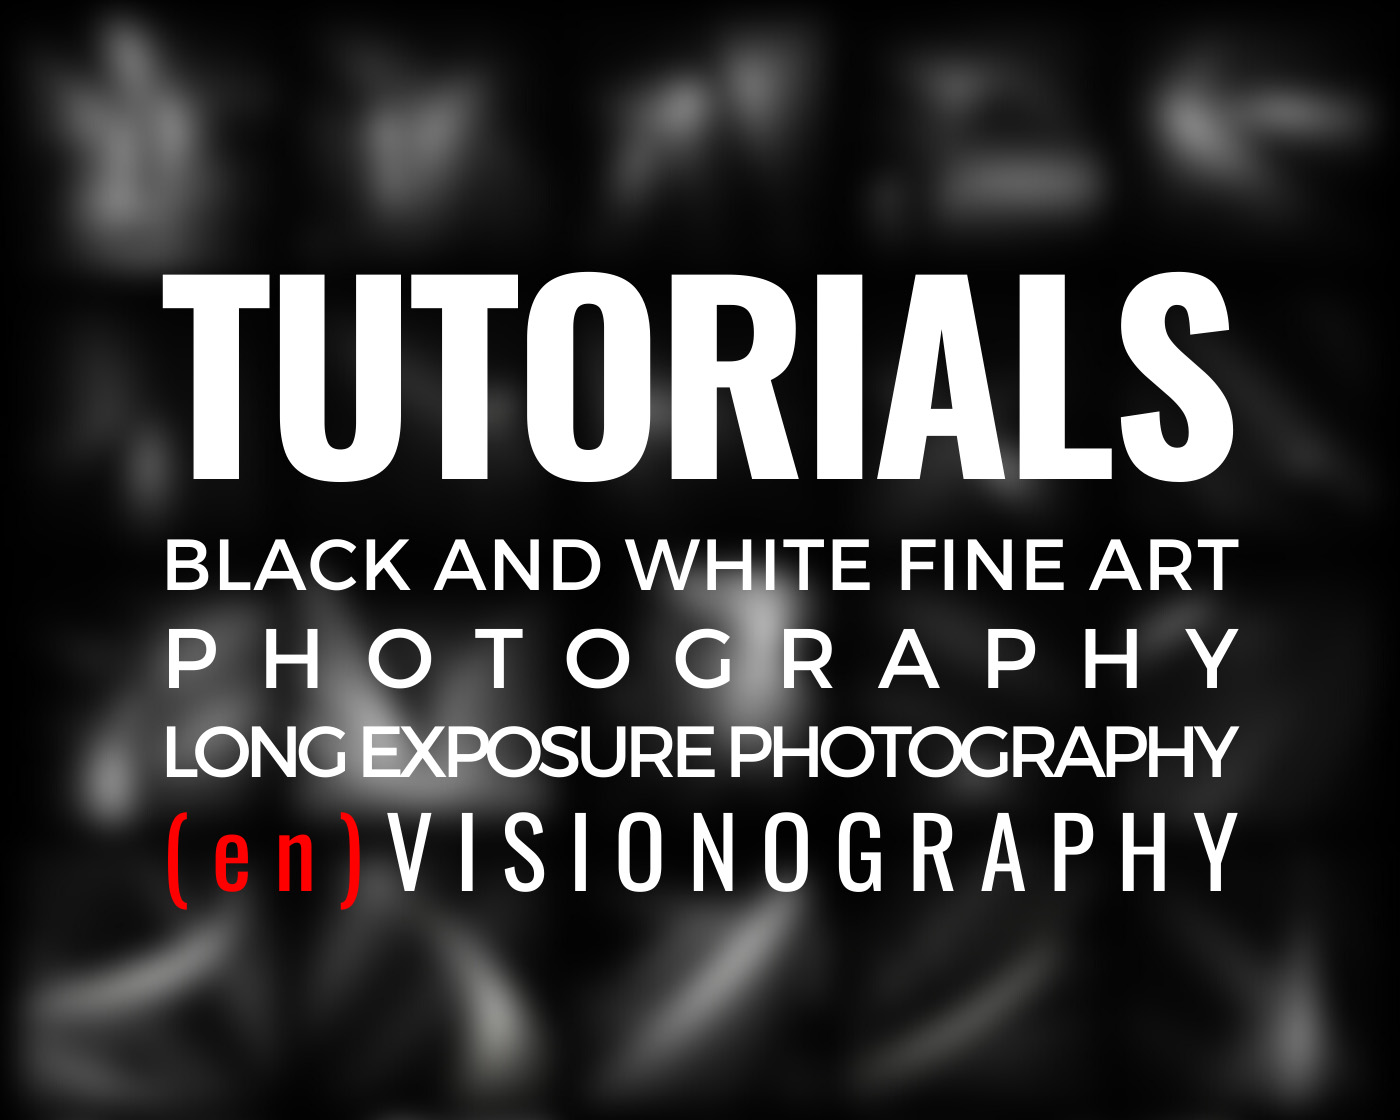 TUTORIAL page Black and white photography long exposure envisionoraphy